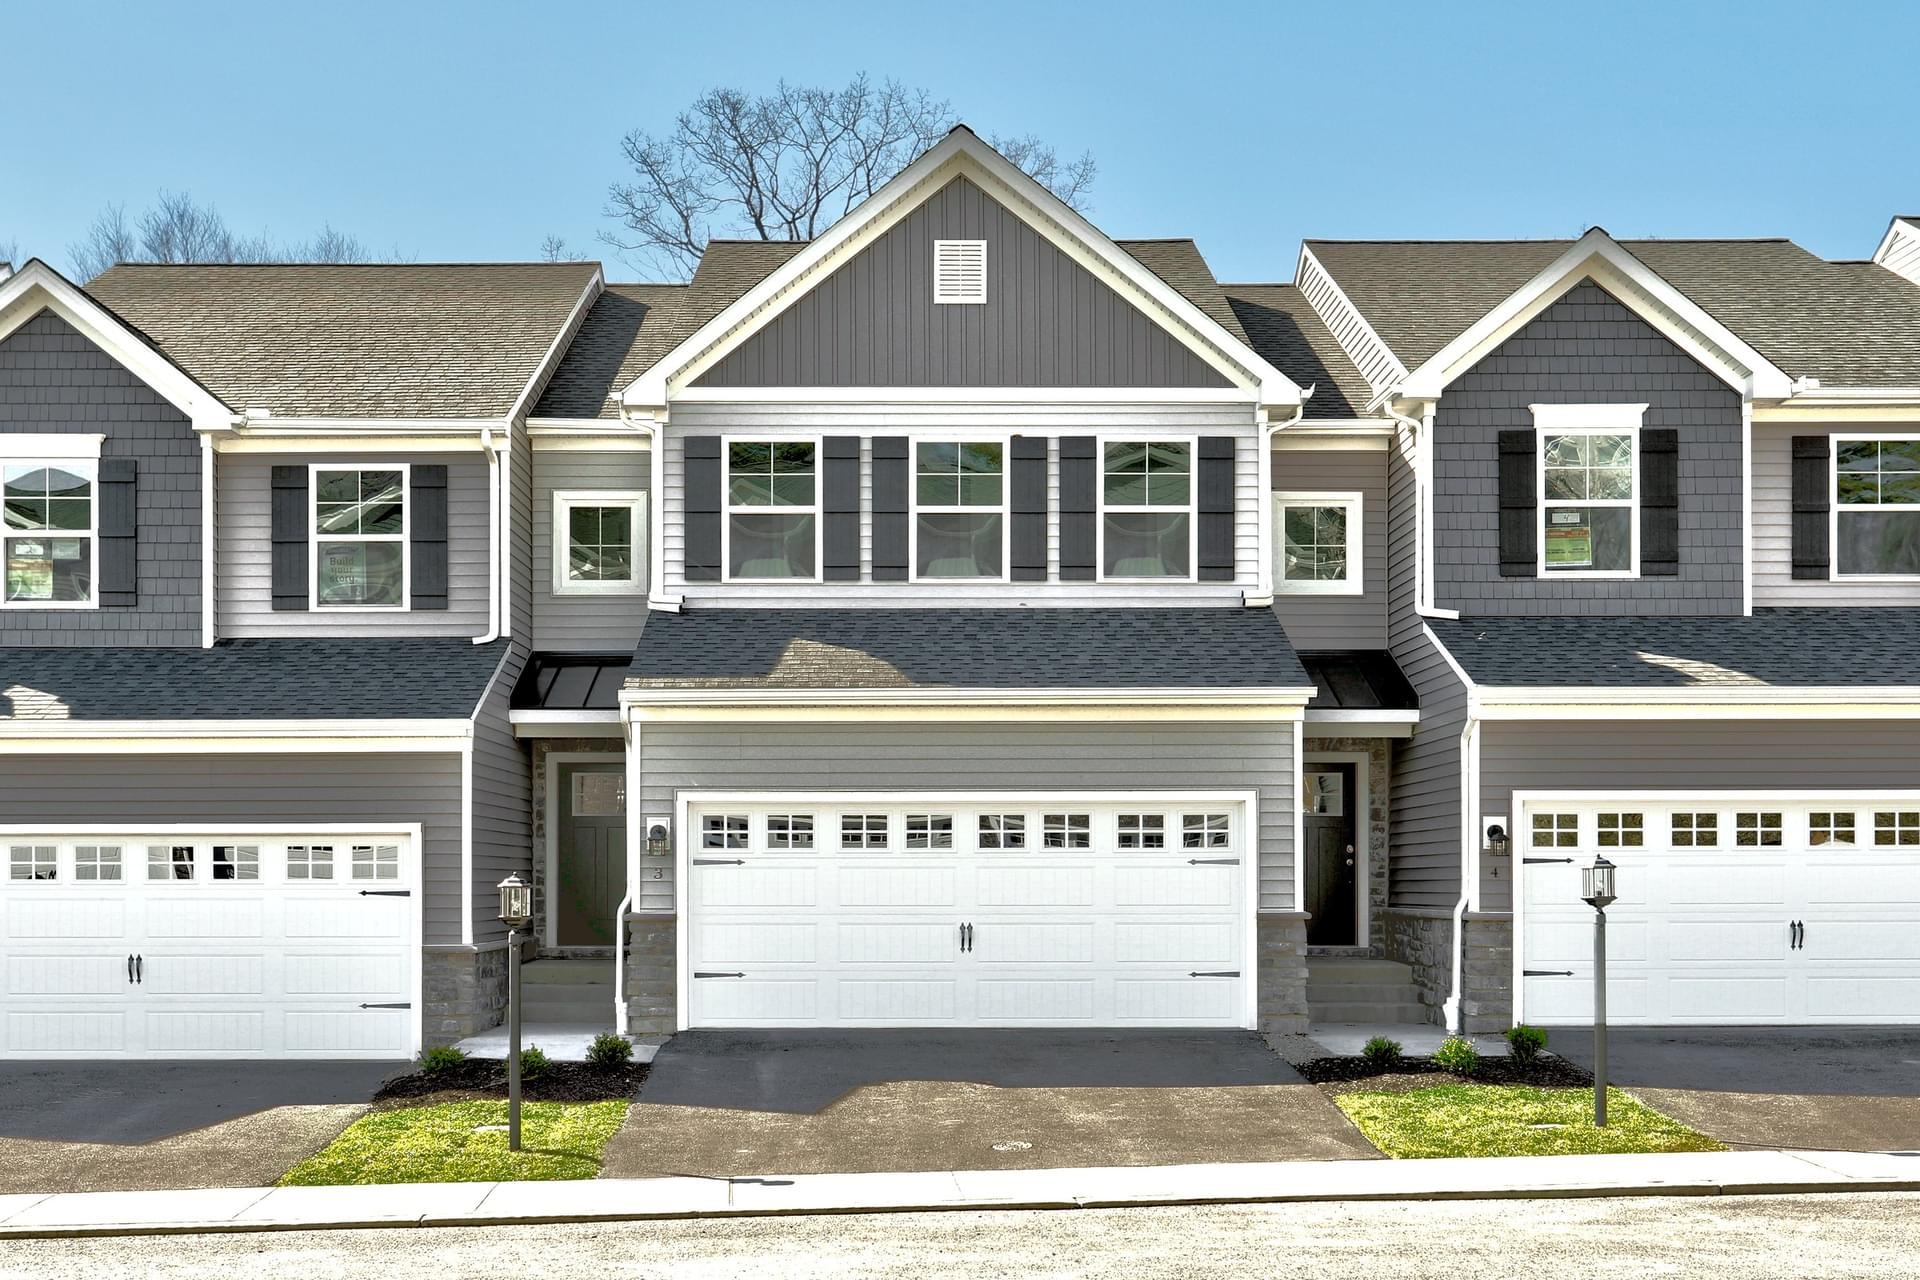 Berks Homes in 3 Woods Dr., Camp Hill, PA 17011 PA